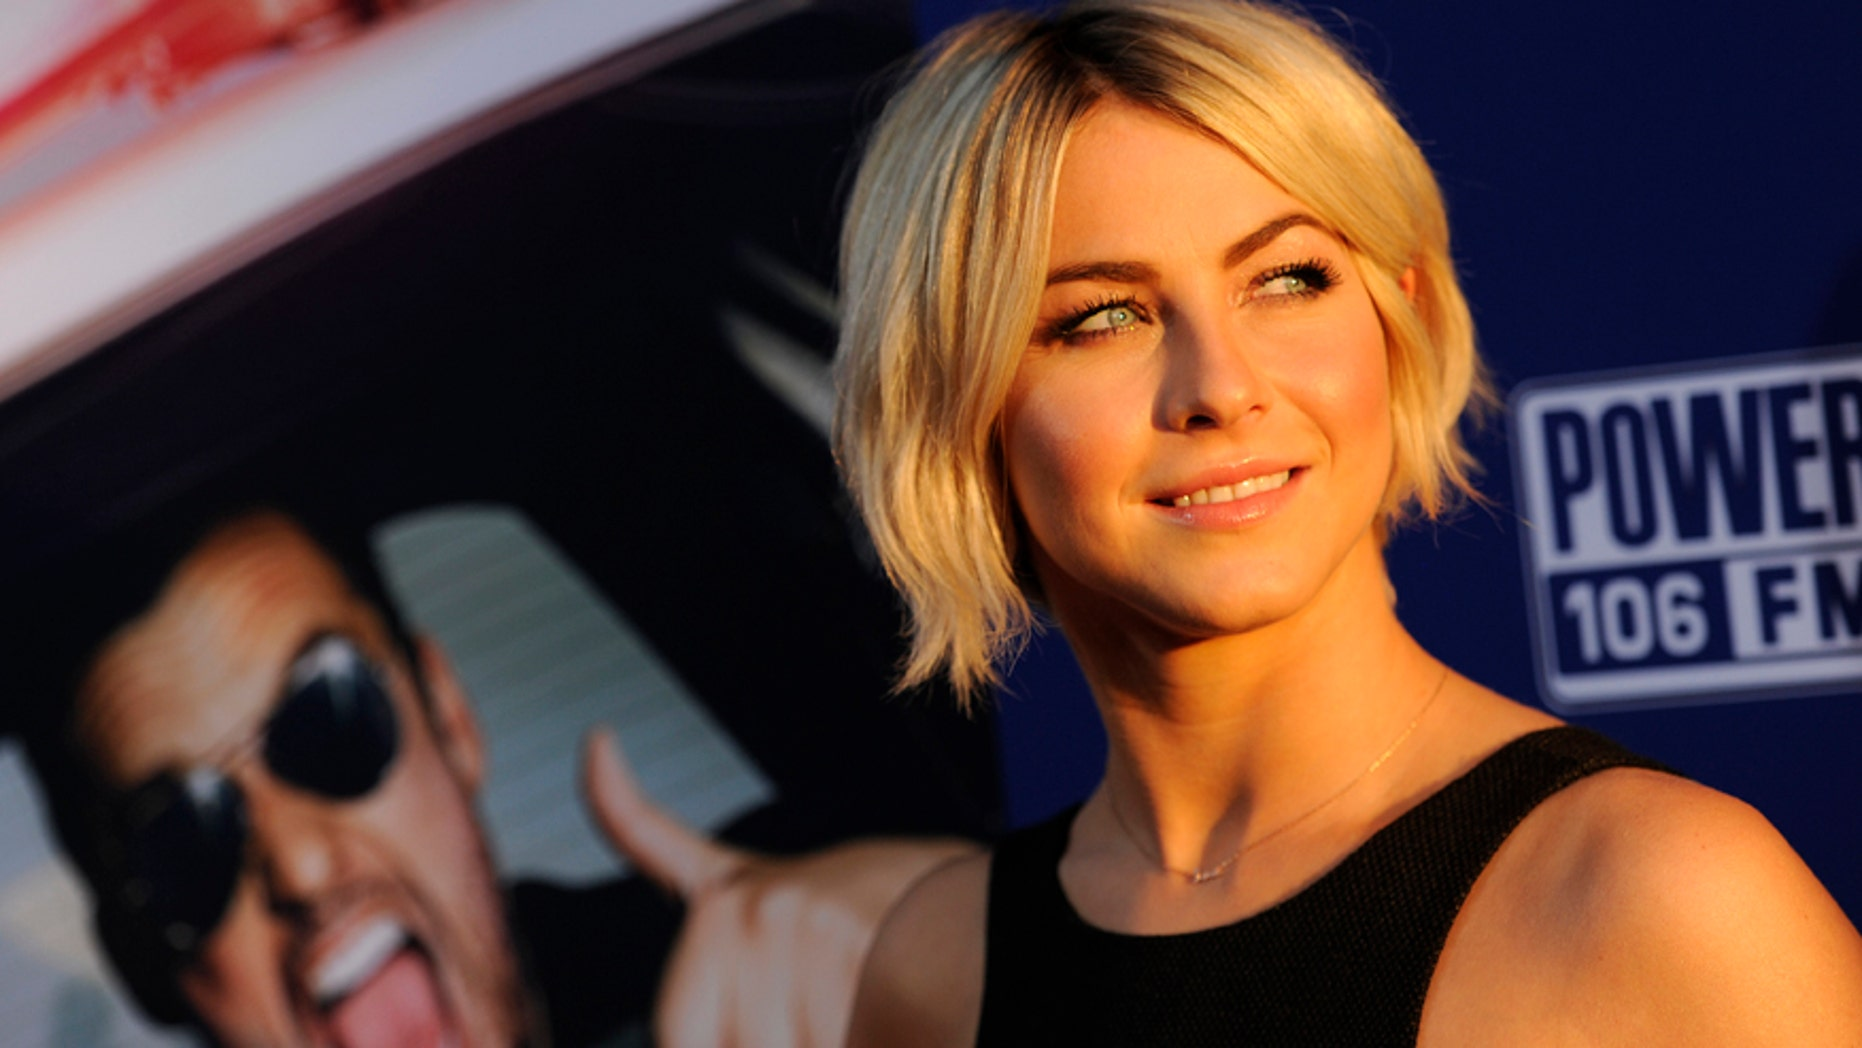 """Actress Julianne Hough looks back for photographers at the premiere of the film """"Let's Be Cops"""" on Thursday, Aug. 7, 2014, in Los Angeles."""